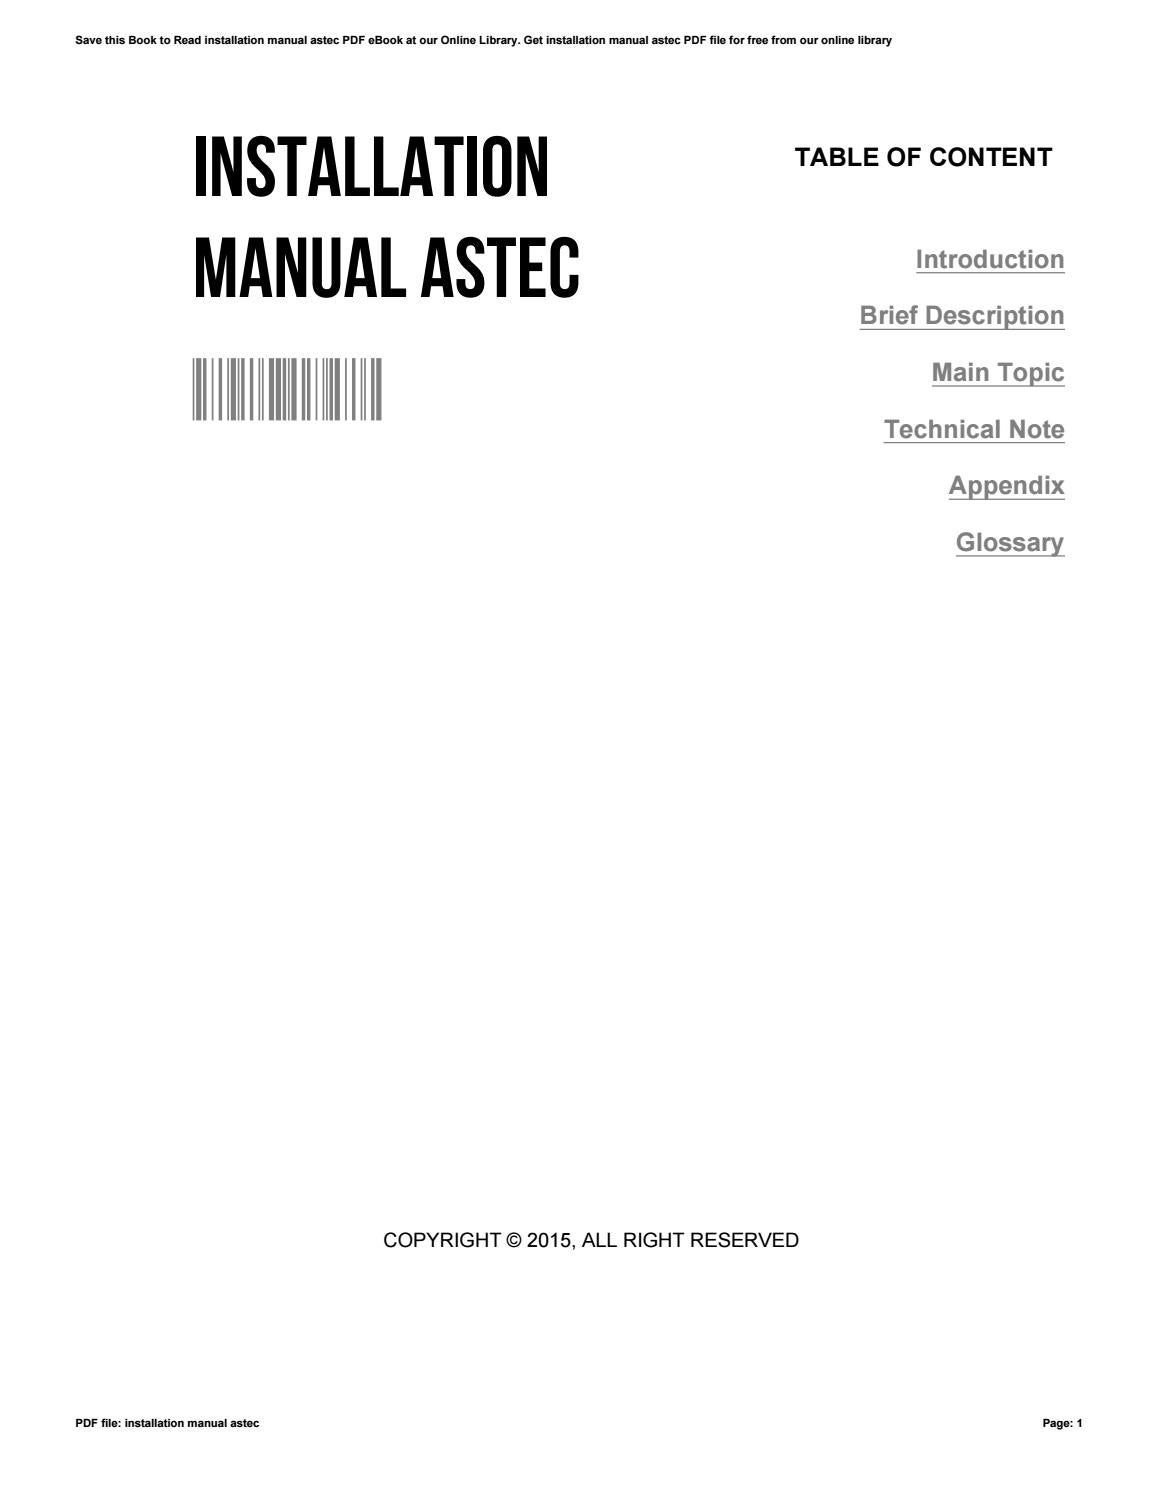 installation manual astec by 20boxme59 issuu rh issuu com installation manual steinel 5503/04 installation manual acorn stair lift